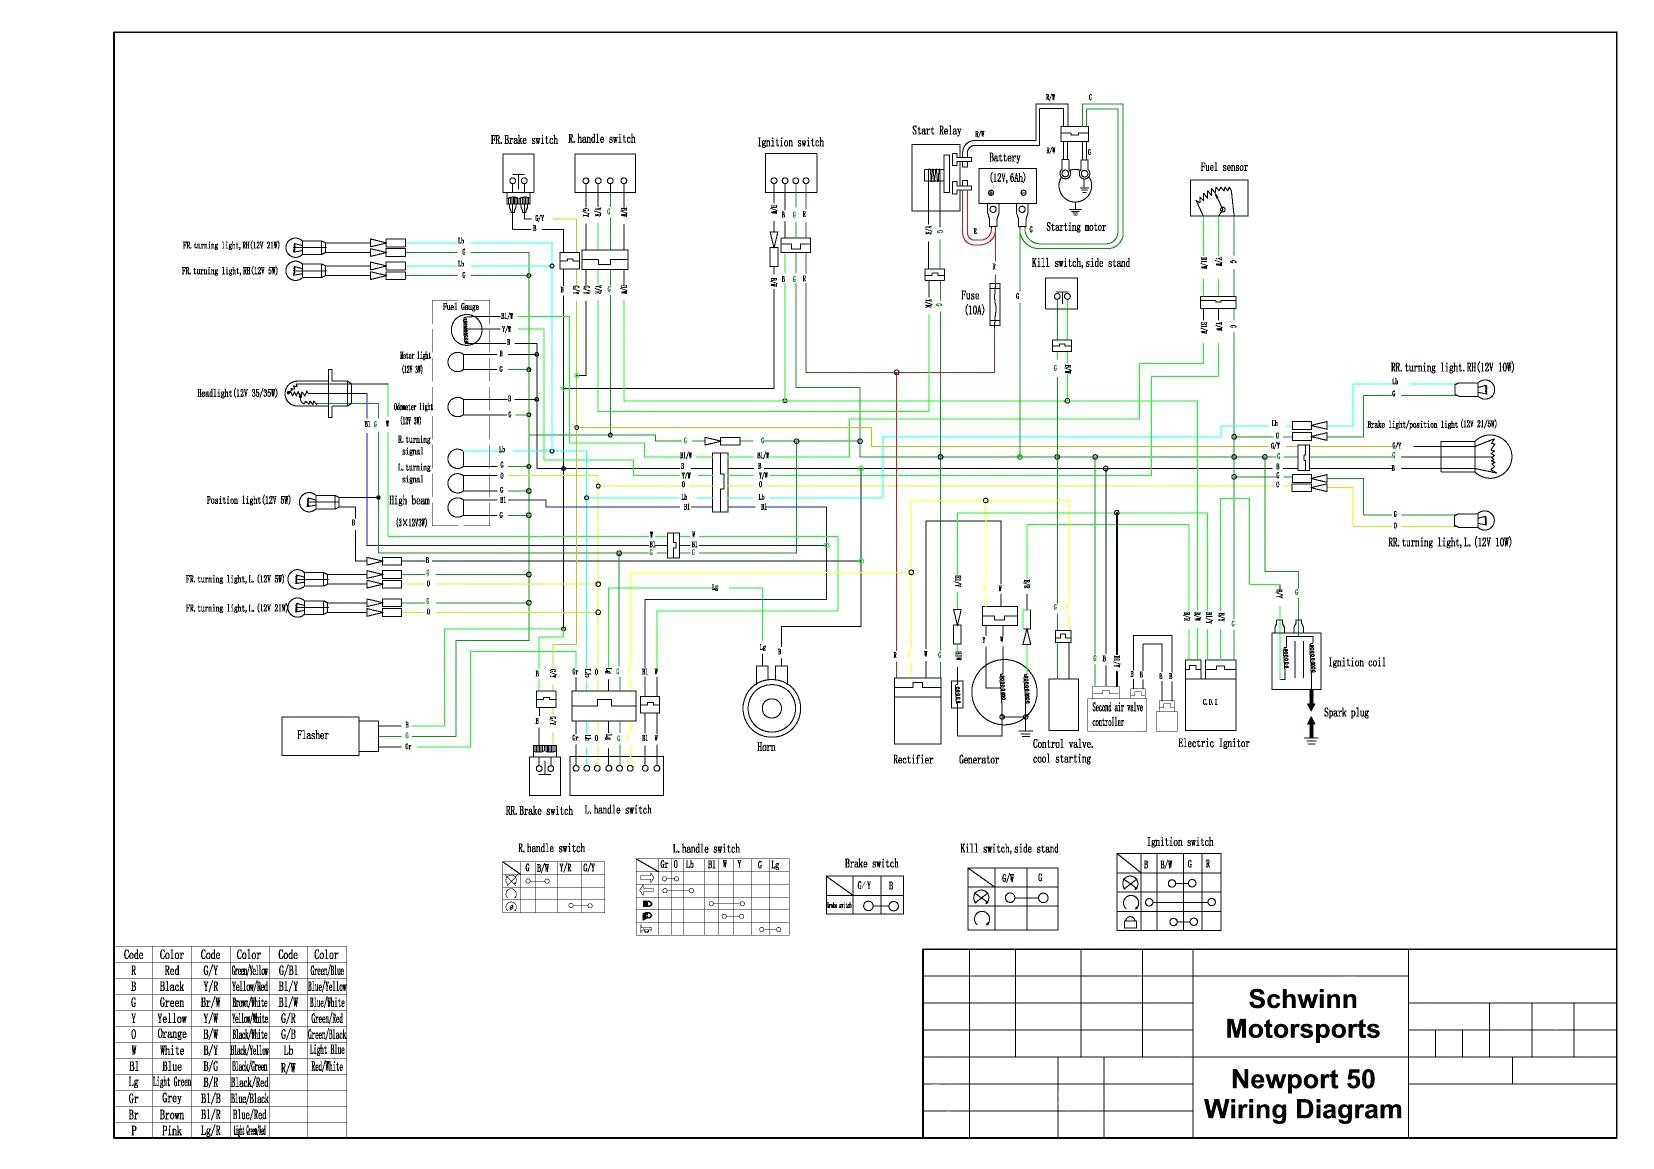 Honda 49cc Scooter Wiring Diagram Automotive Block Diagram \u2022 Moped  Ignition Wiring Diagram China Xingyue 49cc Scooter Cdi Wiring Diagram